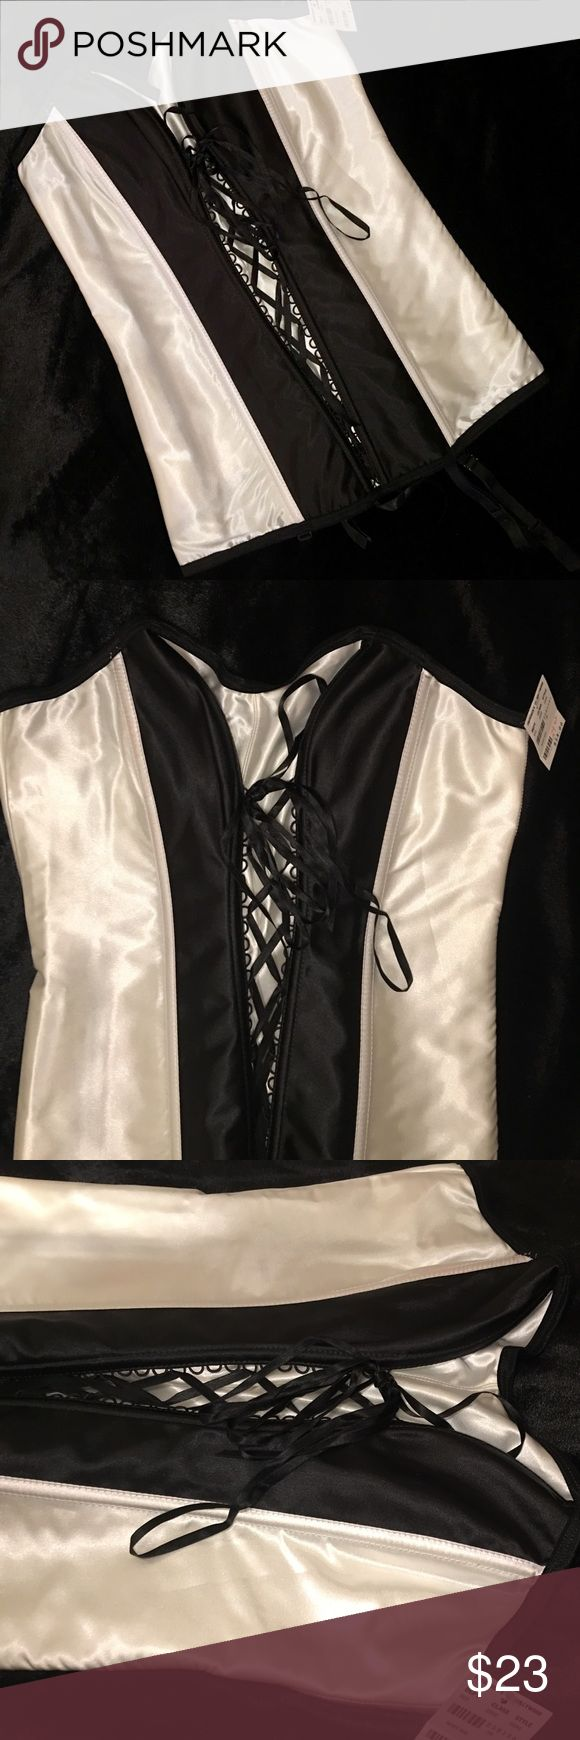 NWT Fredericks of Hollywood lace up corset!!🔥 NWT Fredericks of Hollywood lace up corset!!🔥 Gorgeous lingerie set in black and off-white!!❤️ brand new with org. tags attached!! Fredericks of Hollywood Intimates & Sleepwear